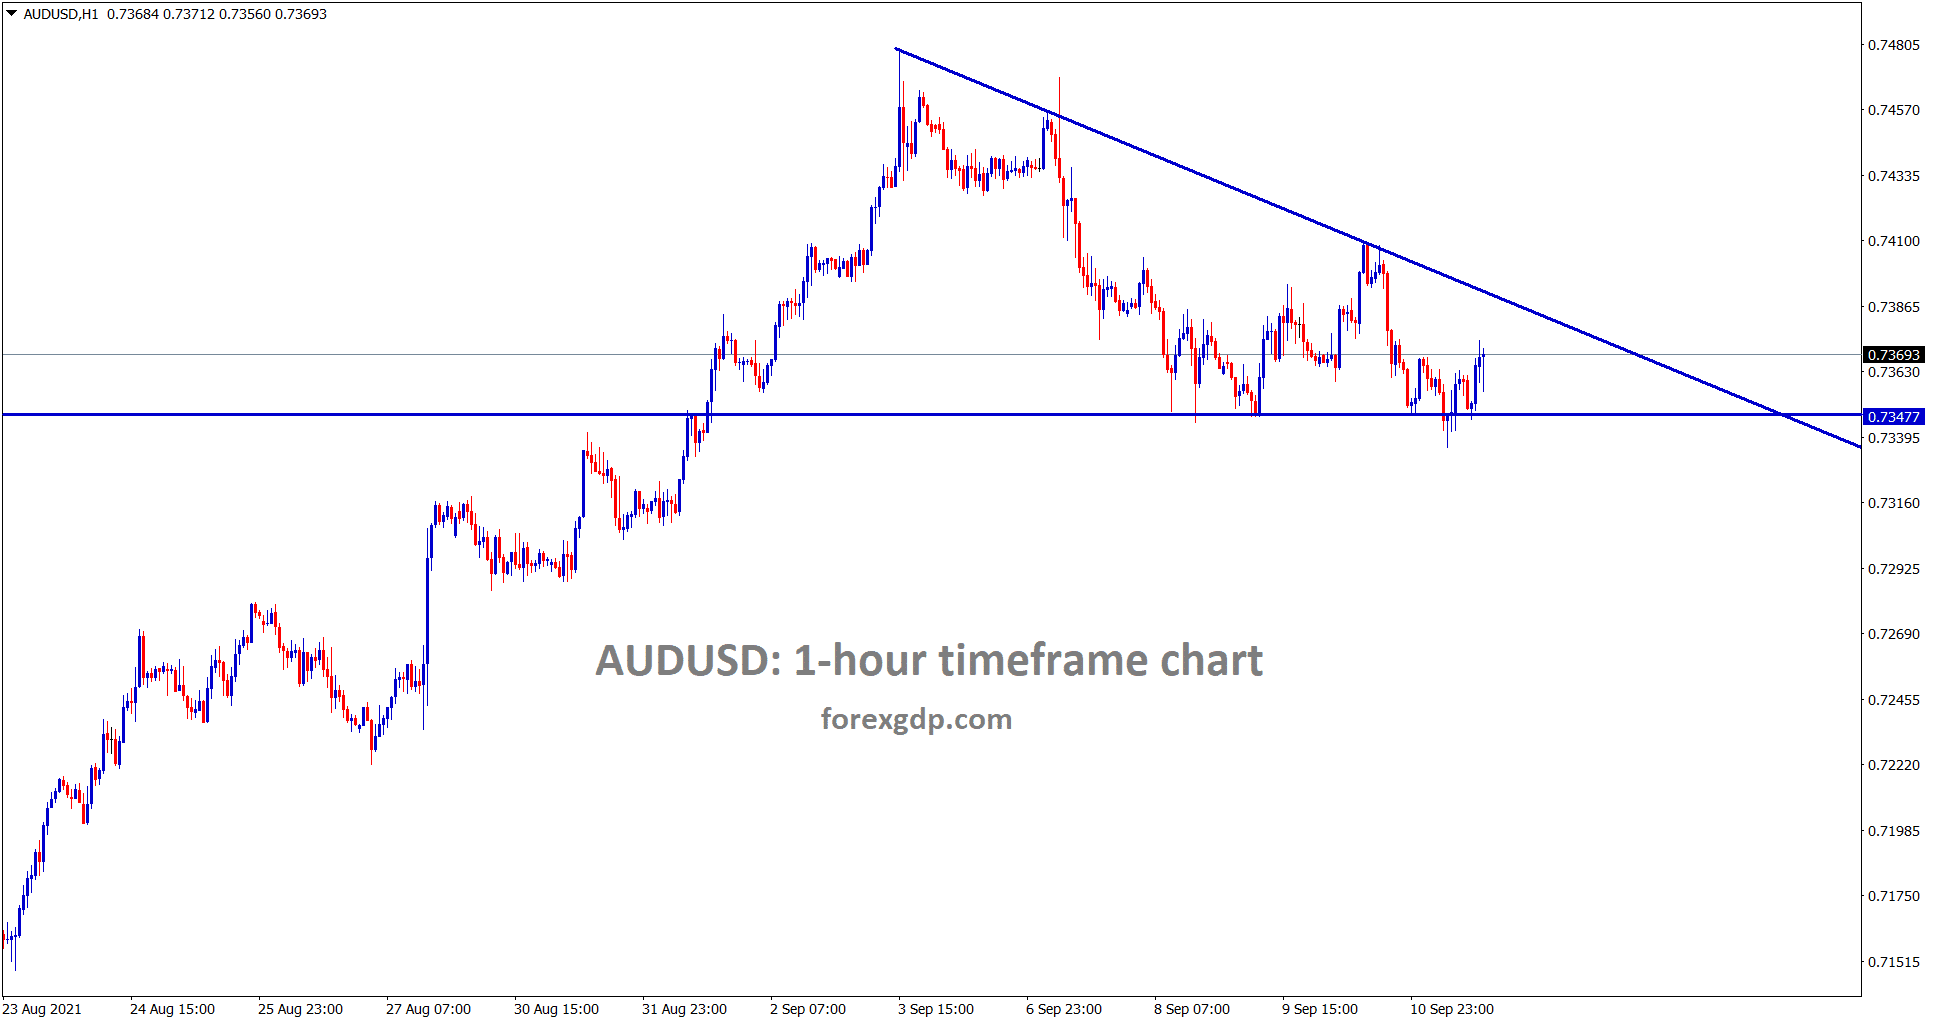 AUDUSD has formed a descending Triangle pattern in the 1 hour timeframe